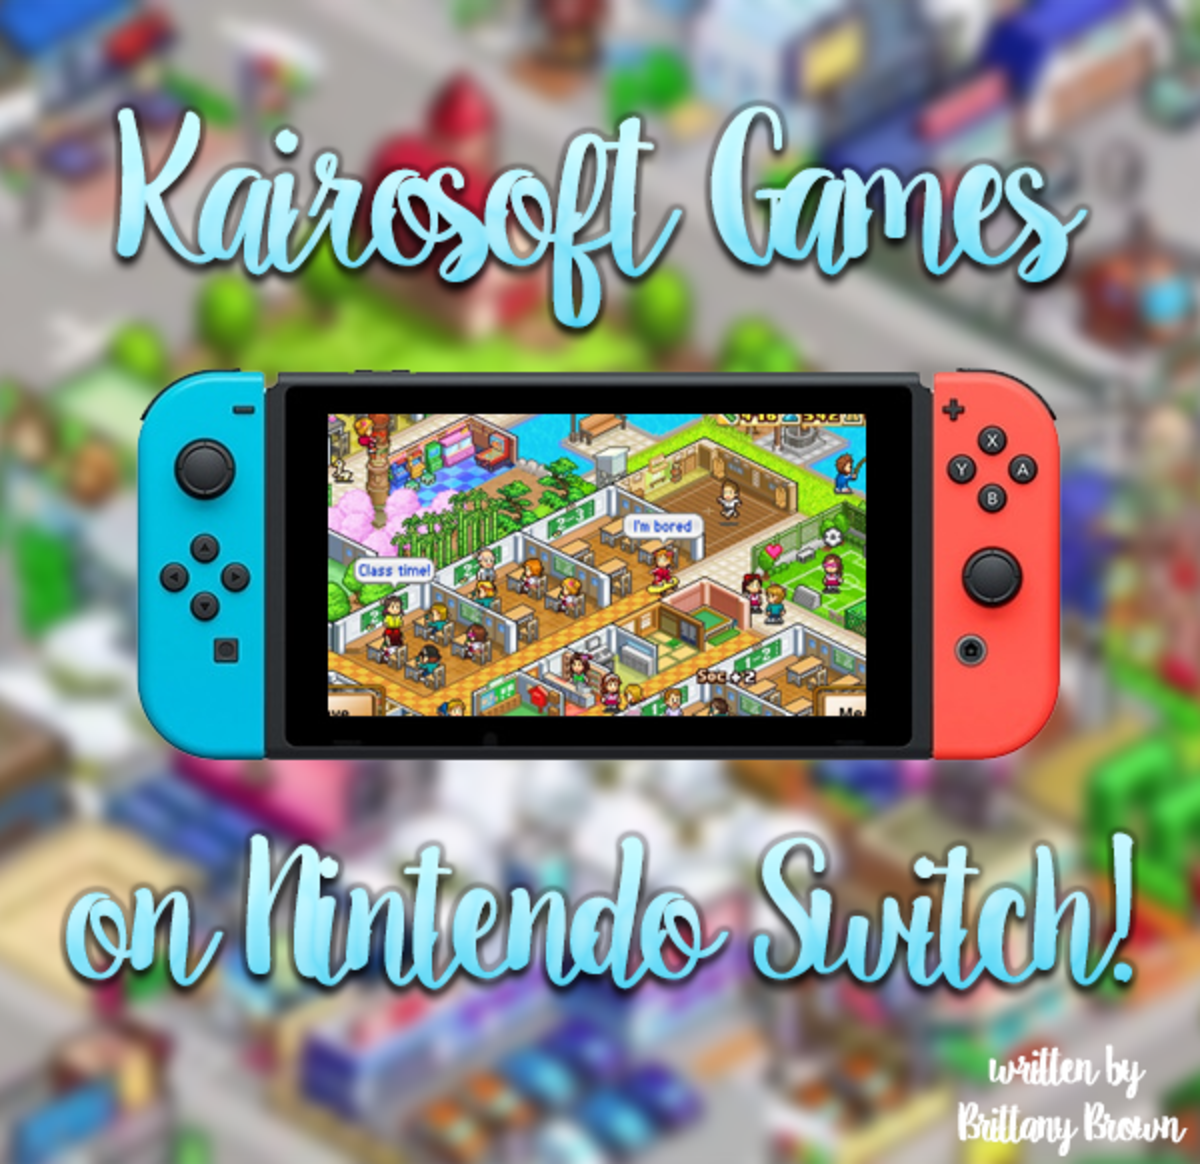 All of the Kairosoft games on Nintendo Switch!